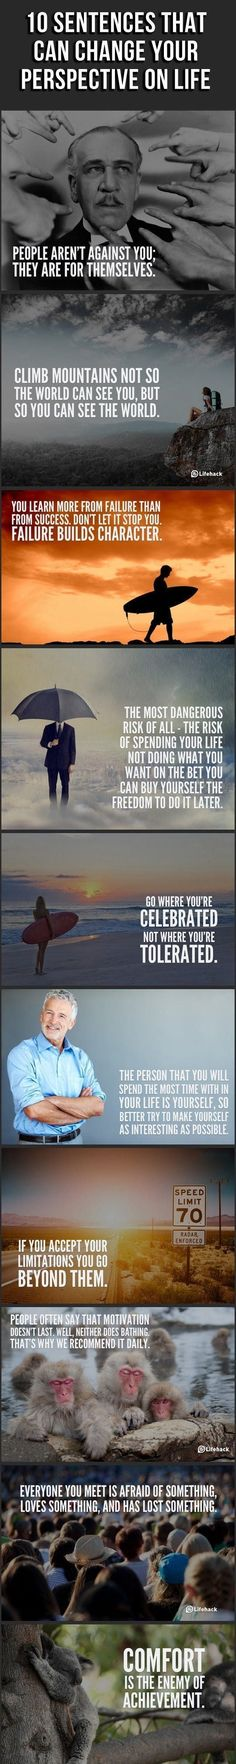 100 Inspirational and Motivational Quotes of All Time! (117)